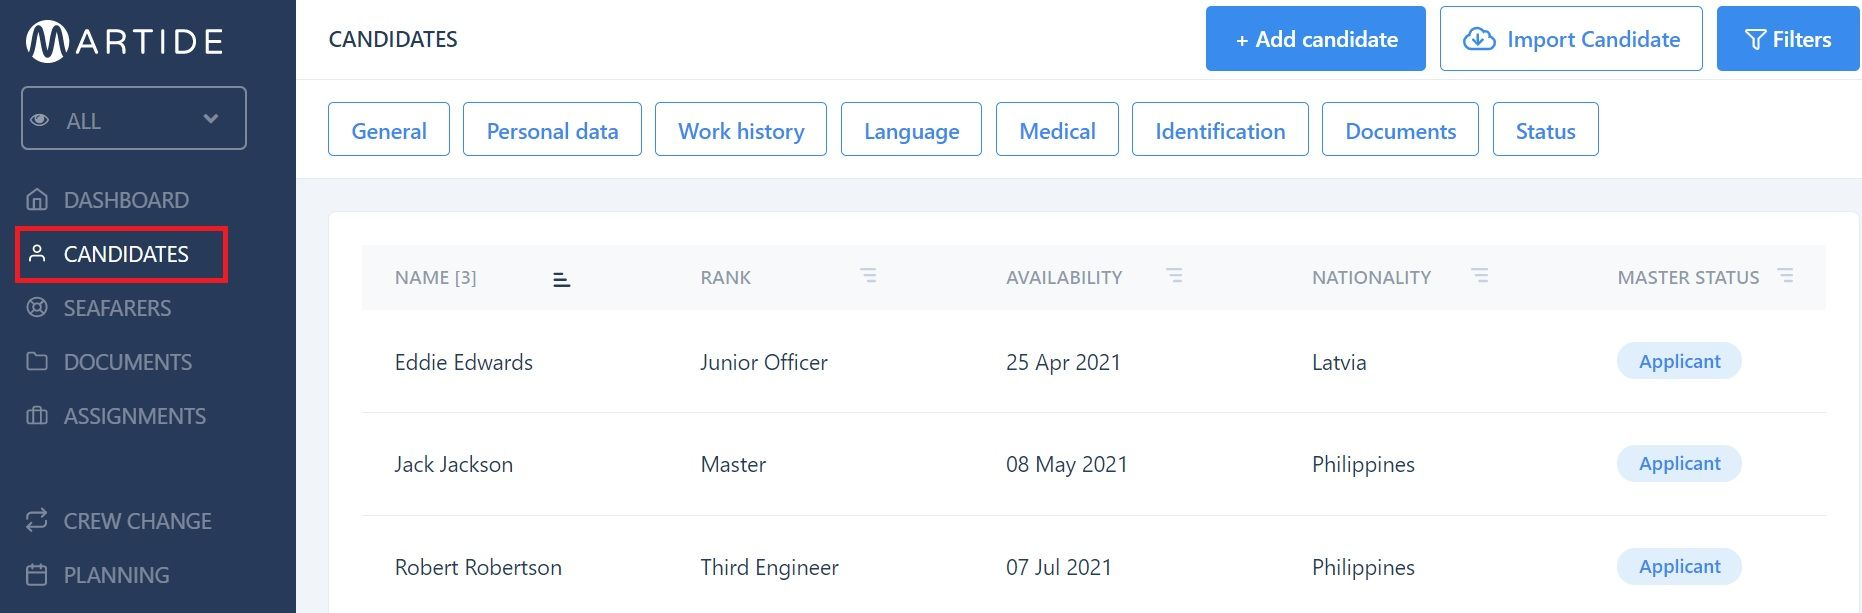 screenshot of Martide maritime recruitment website showing the candidates page